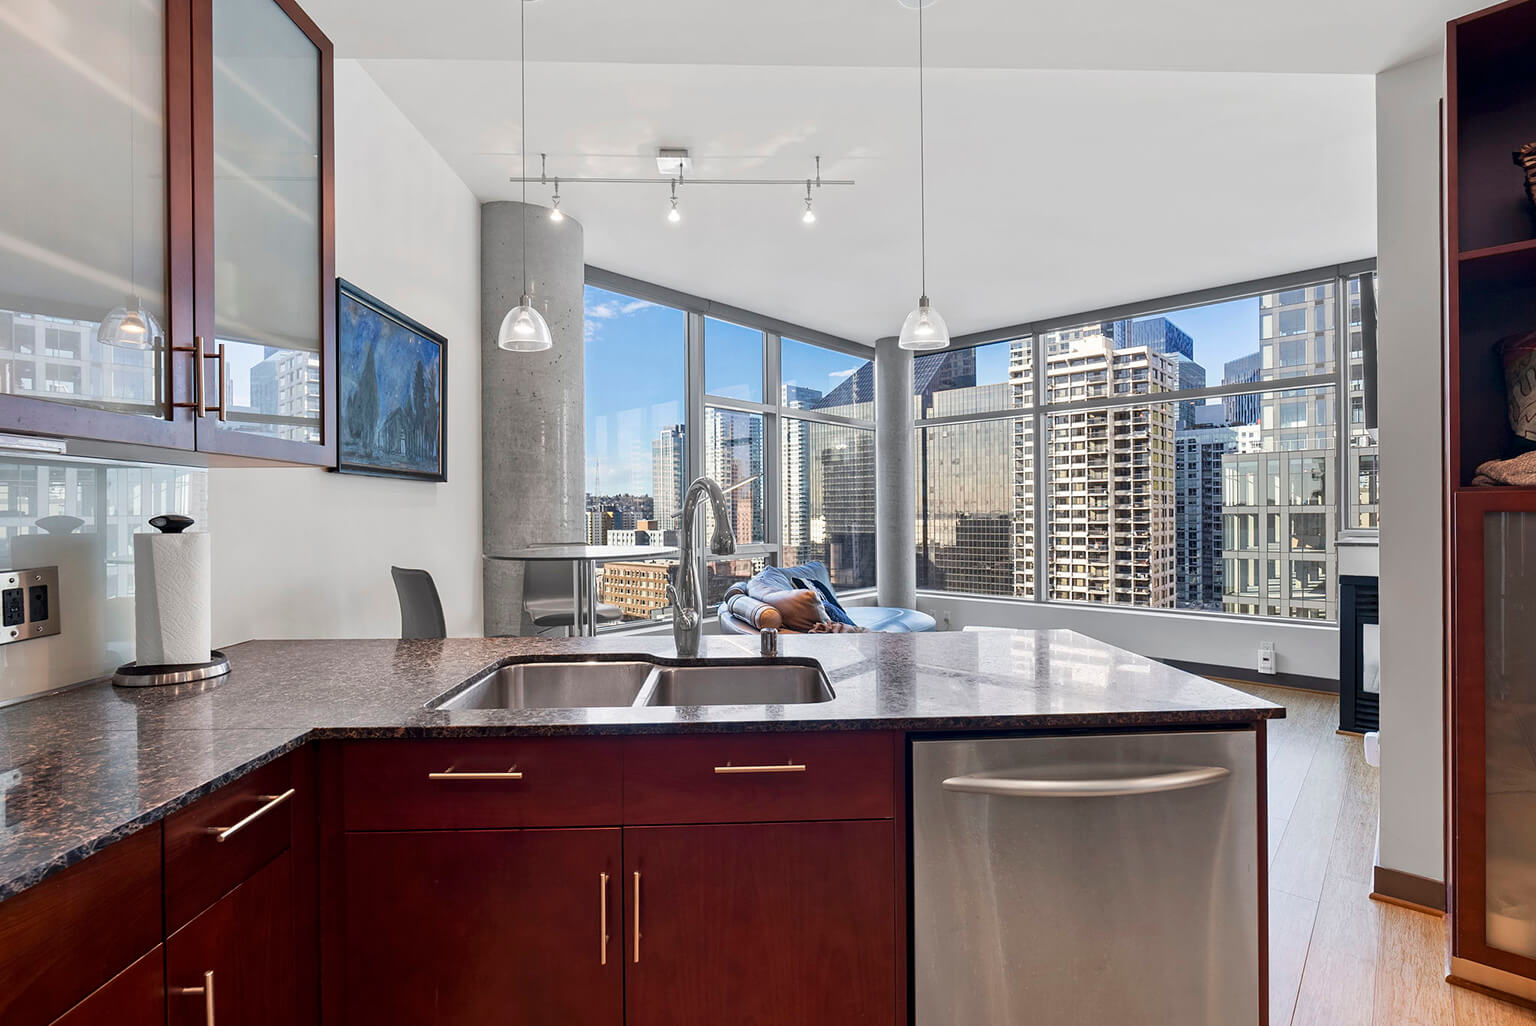 Dramatic city views from the kitchen